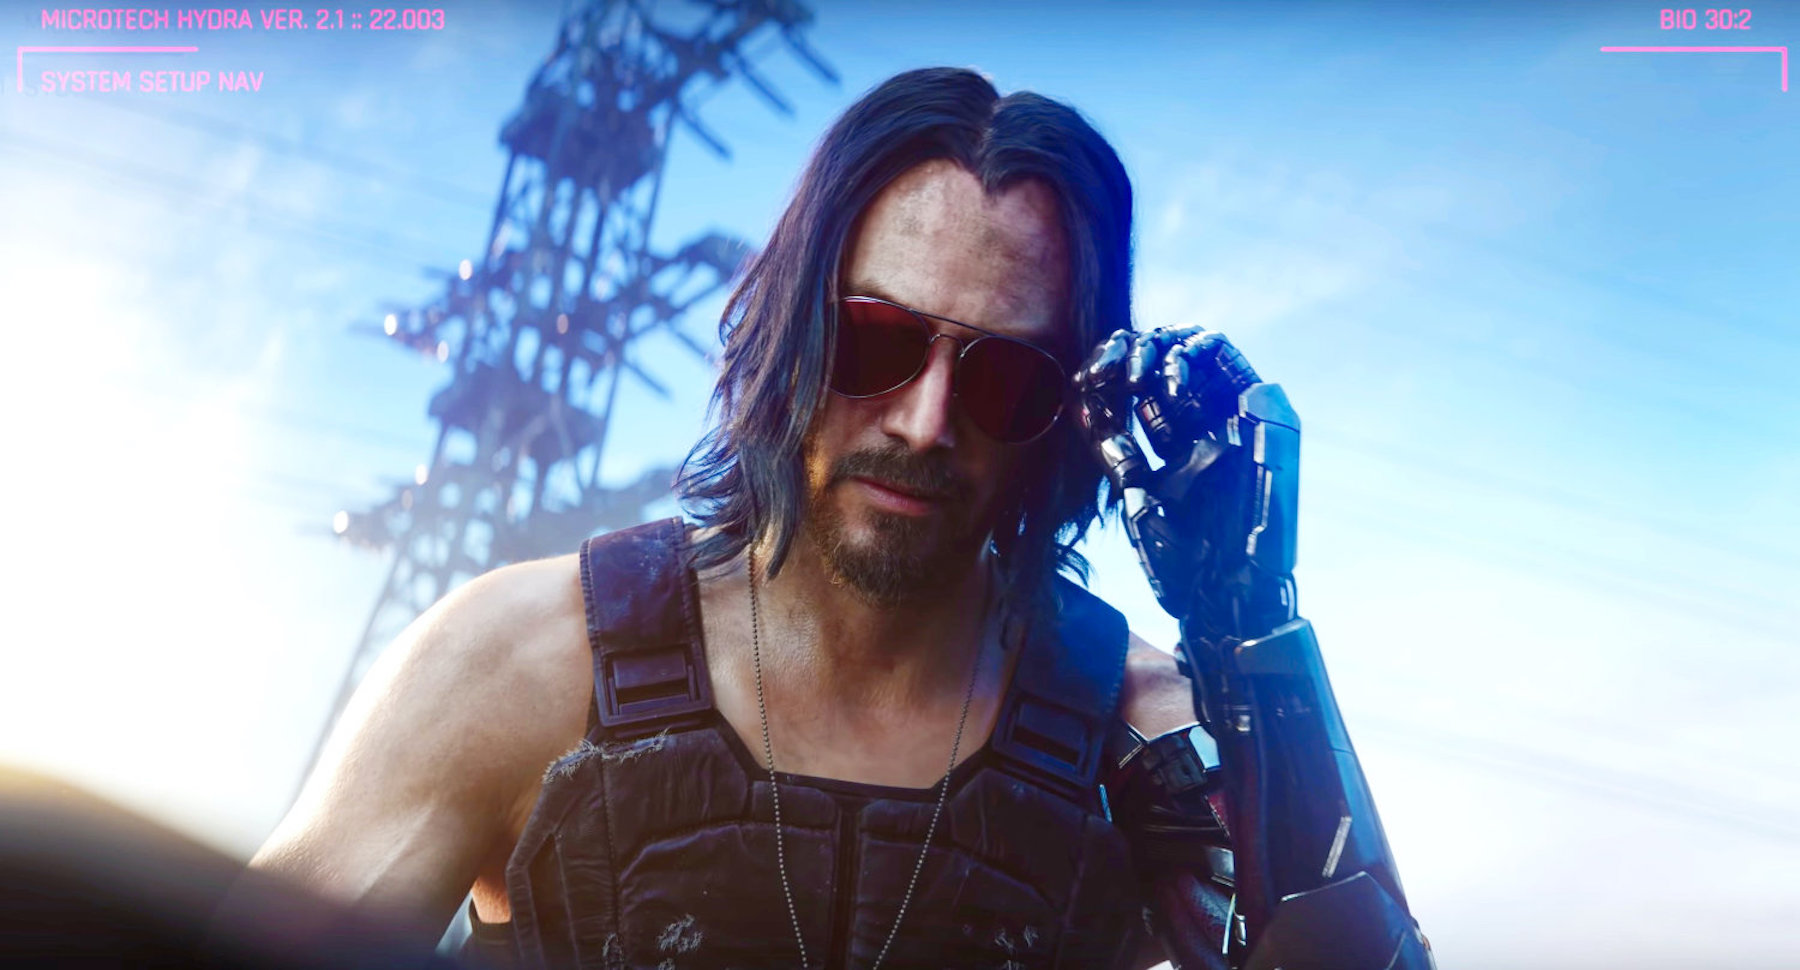 Tomorrow is the new Cyberpunk 2077 trailer. We will see it during the Night City Wire broadcast